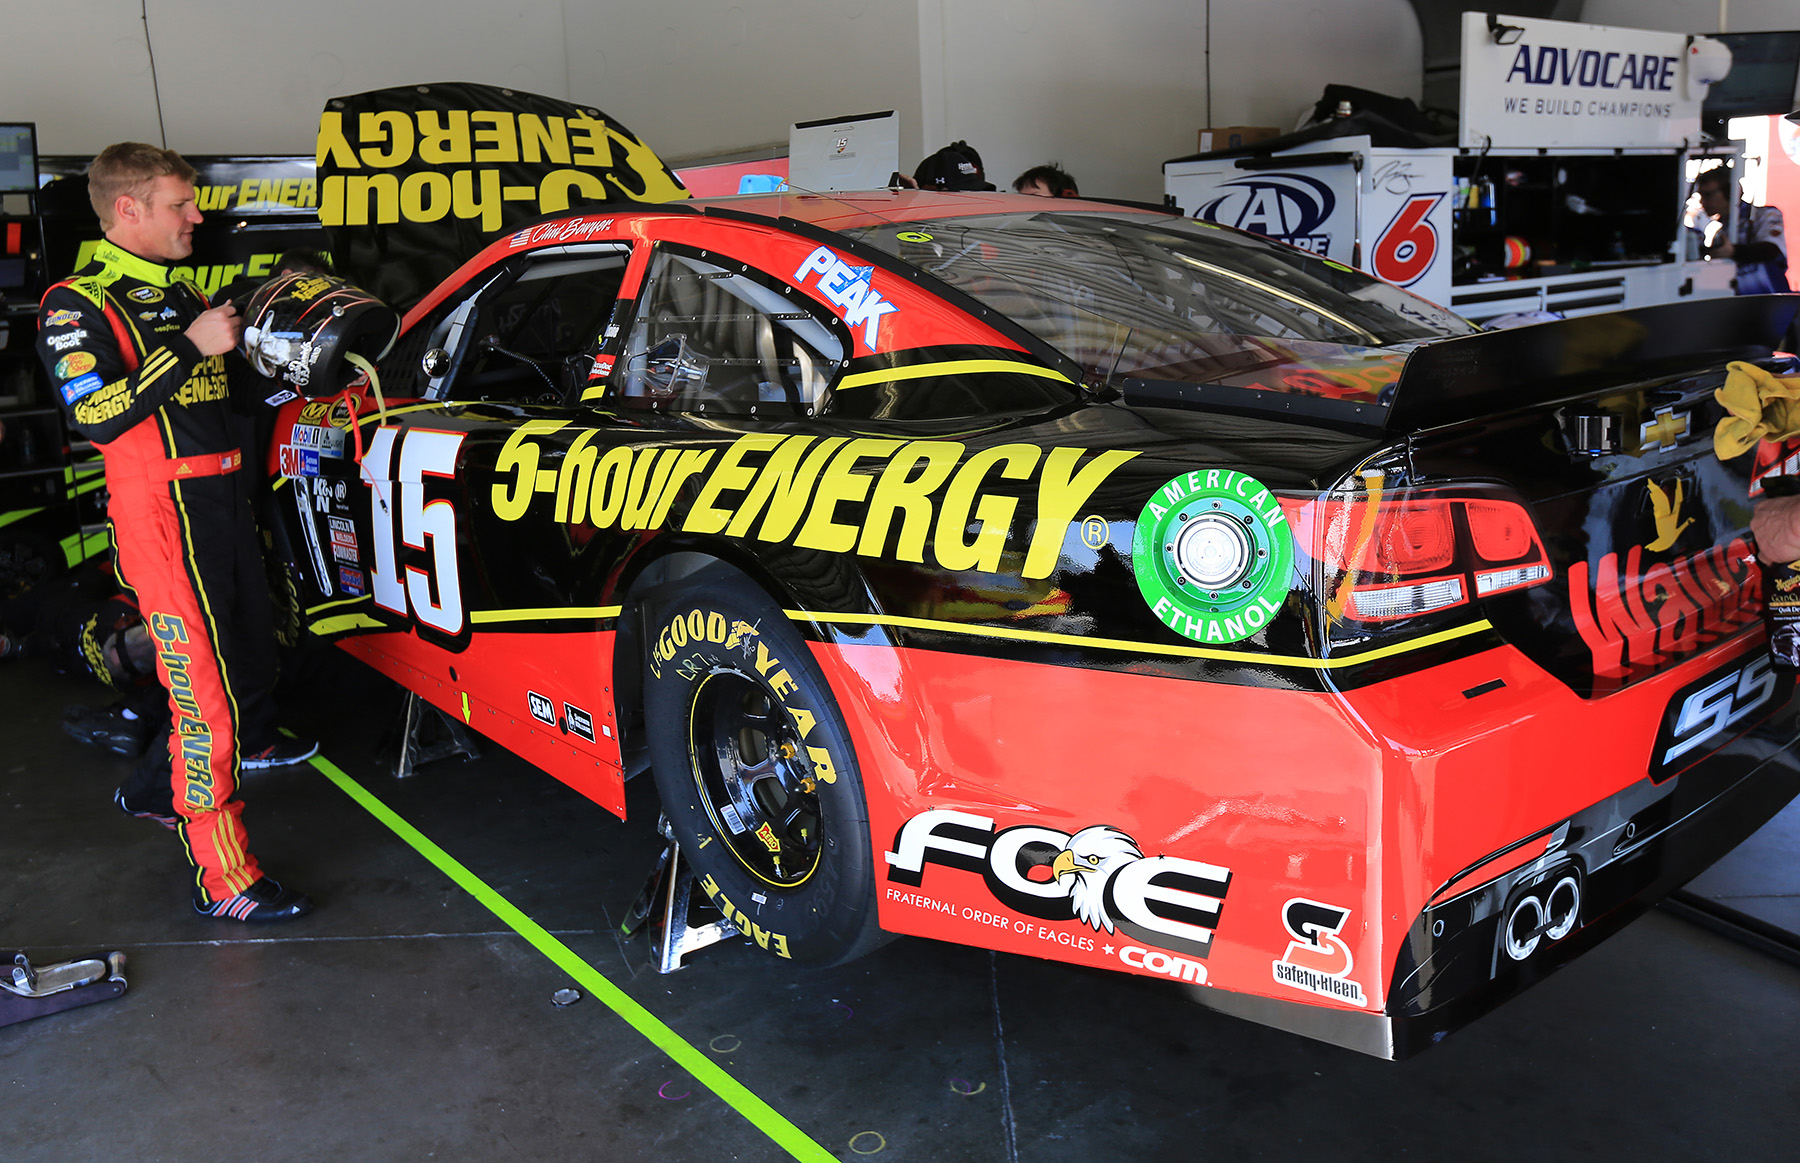 Eagles To Sponsor Clint Bowyer, HScott Motorsports in 2016